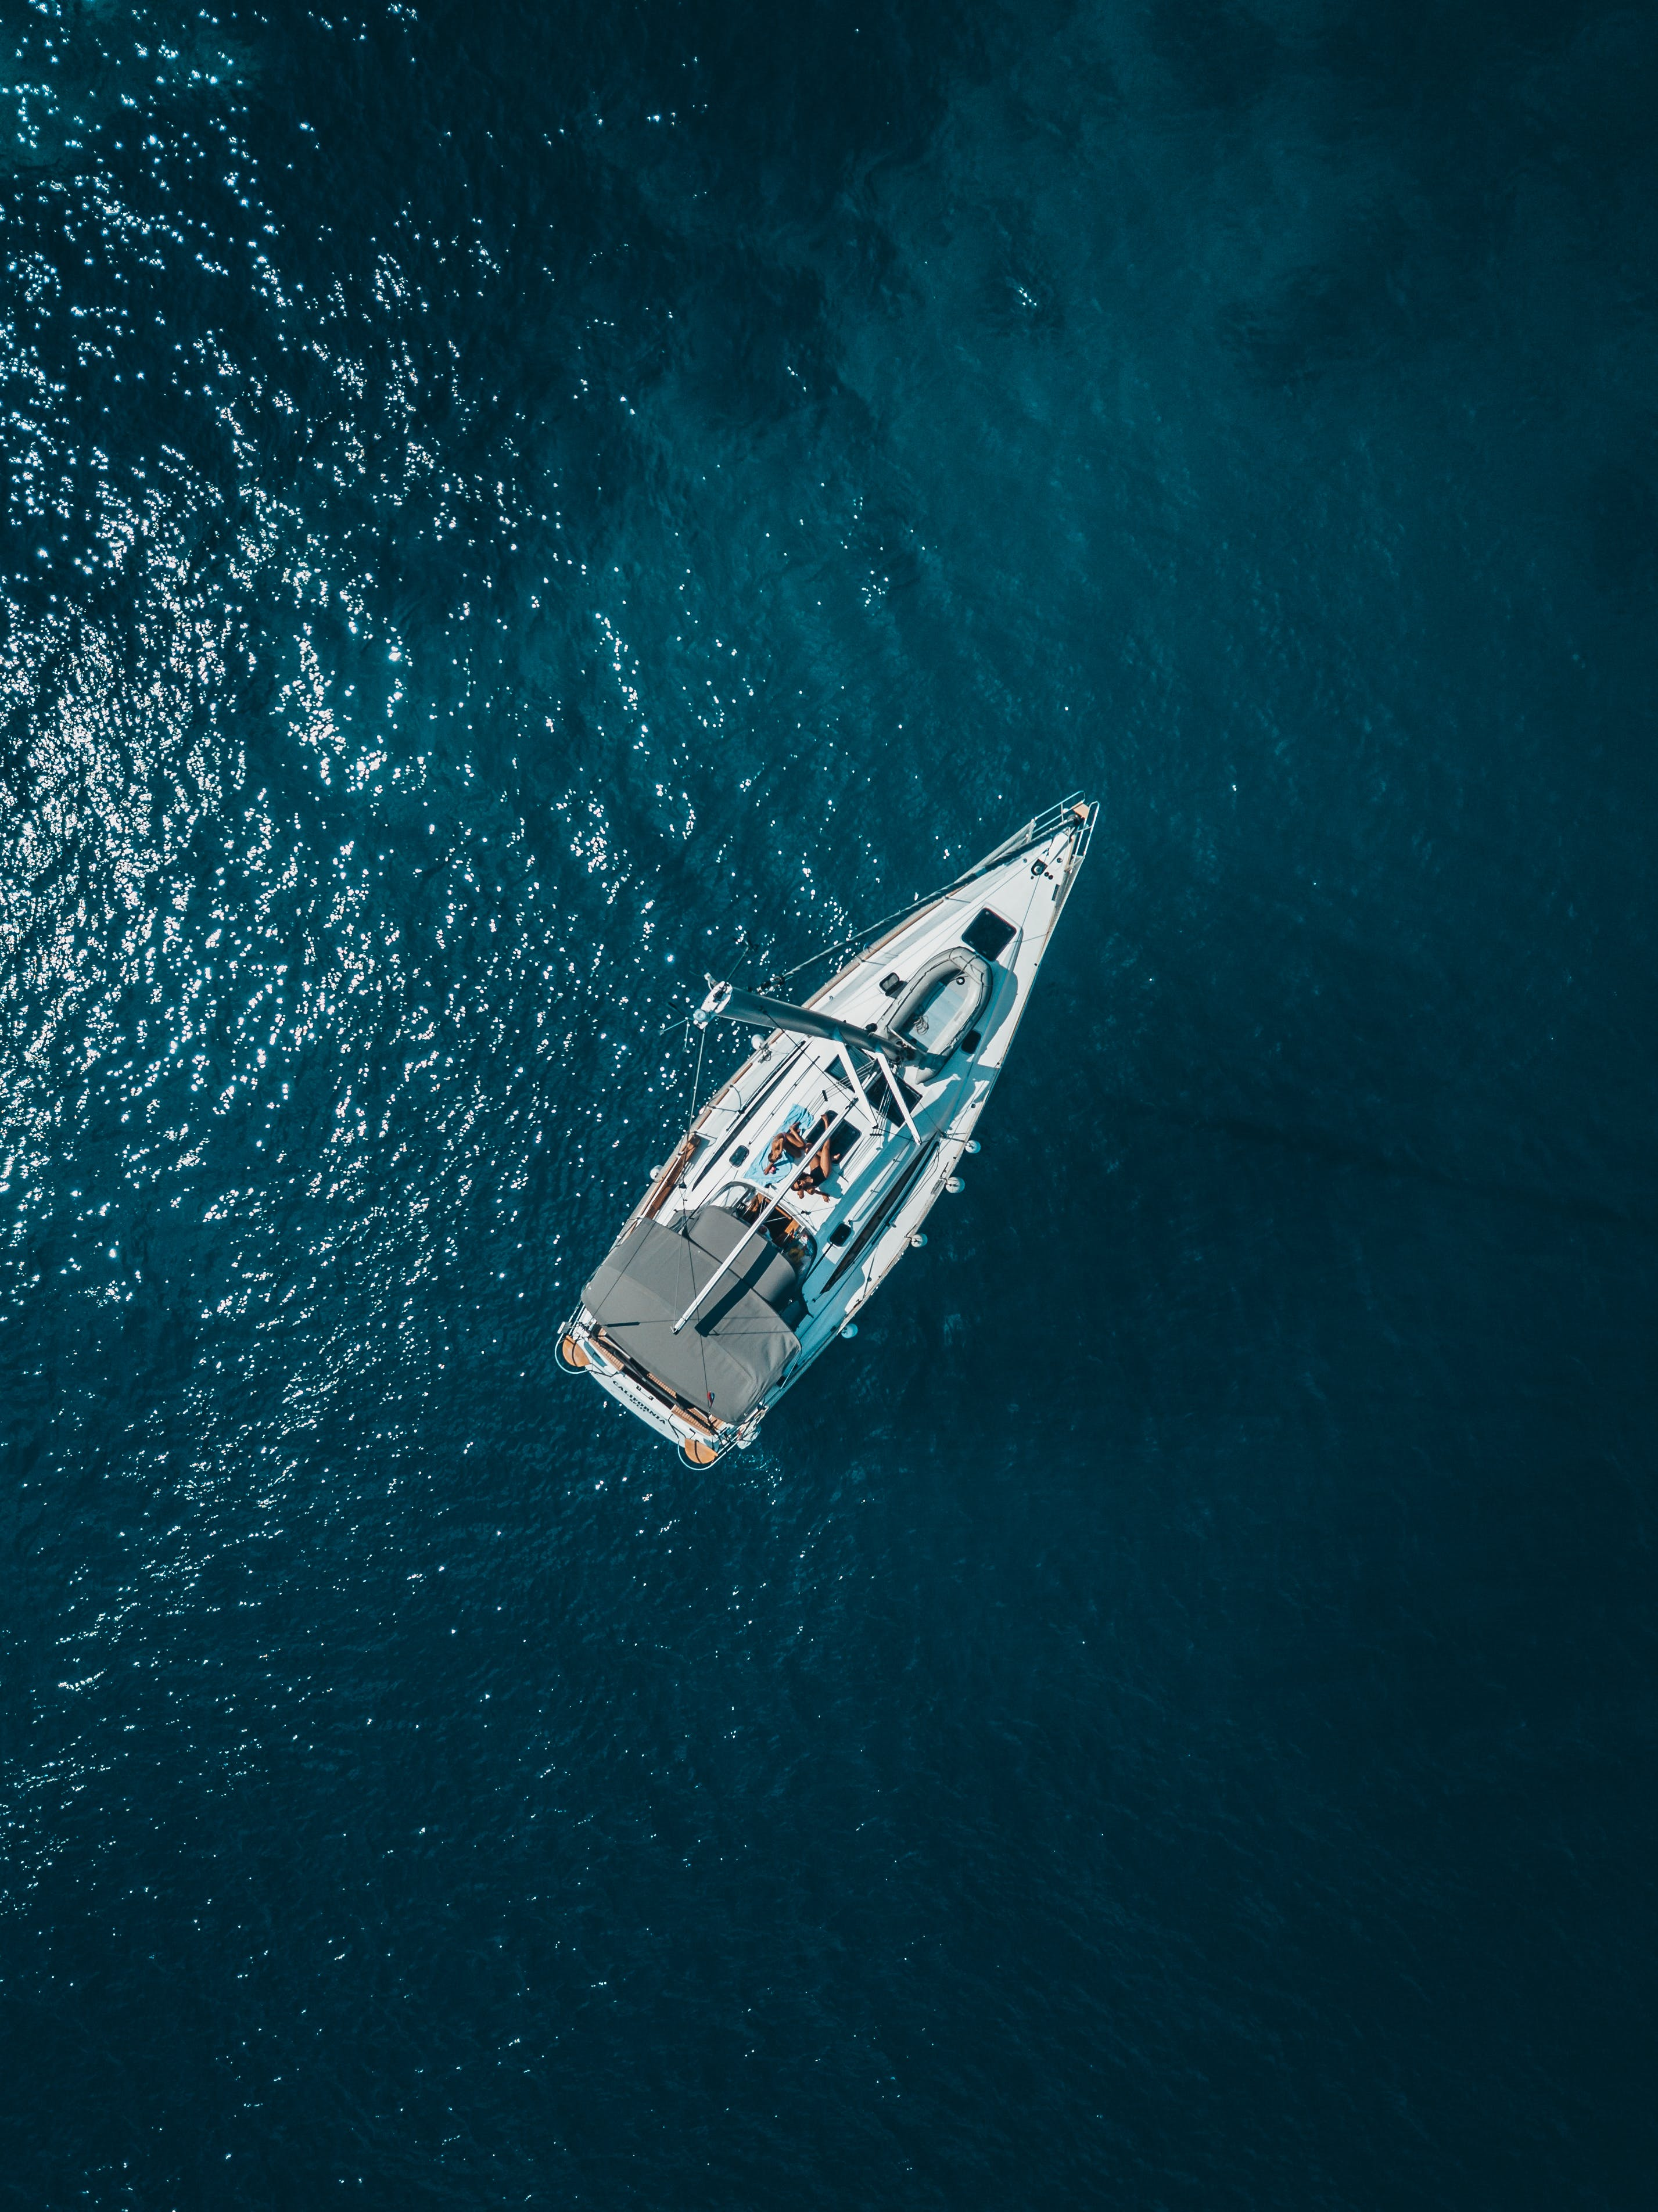 High Angle Photo of White Boat on Body of Water